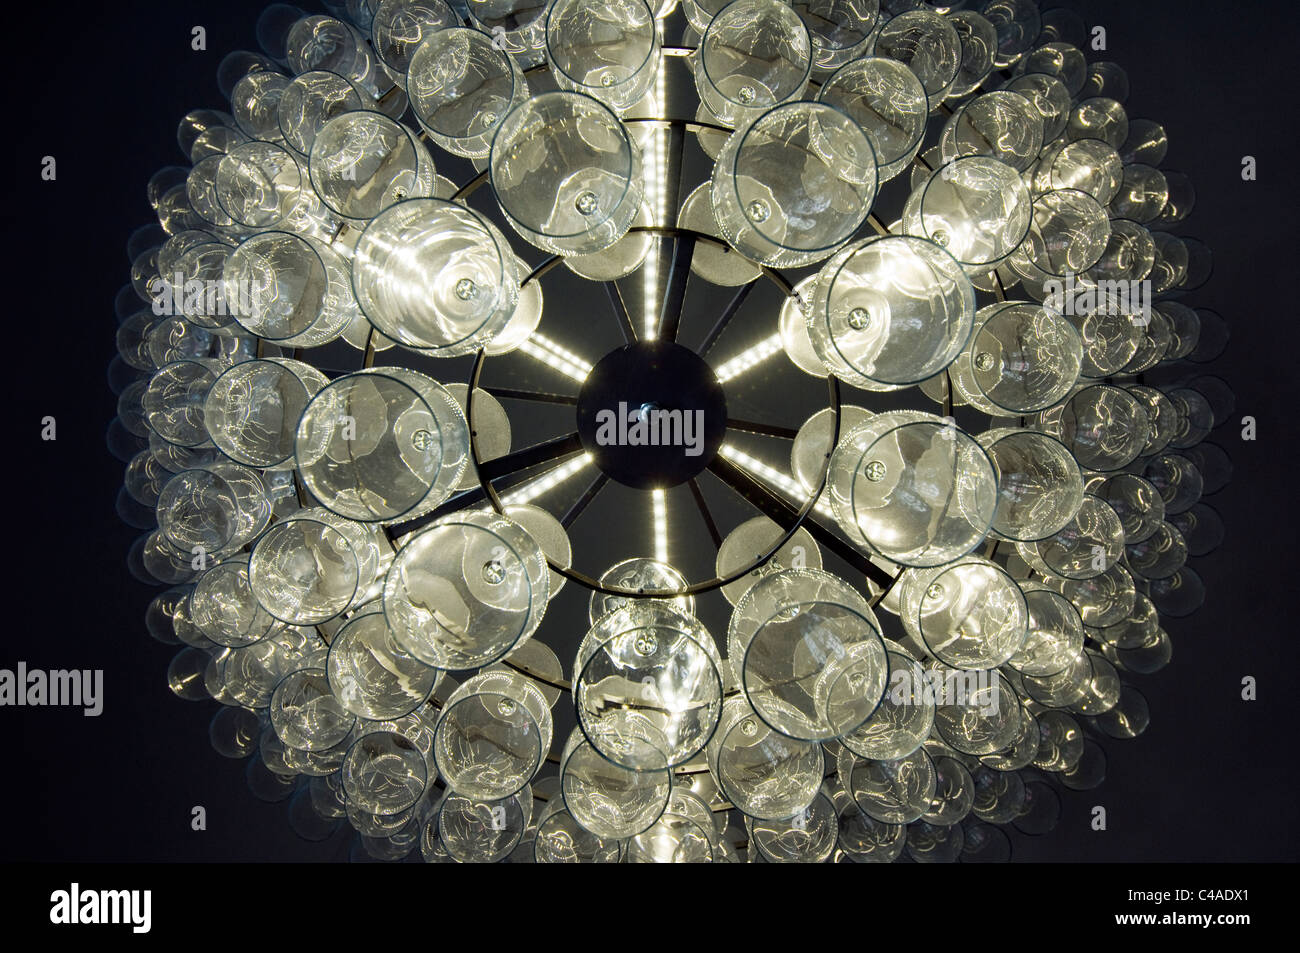 A chandelier made from wine glasses stock photo 37109801 alamy a chandelier made from wine glasses aloadofball Choice Image